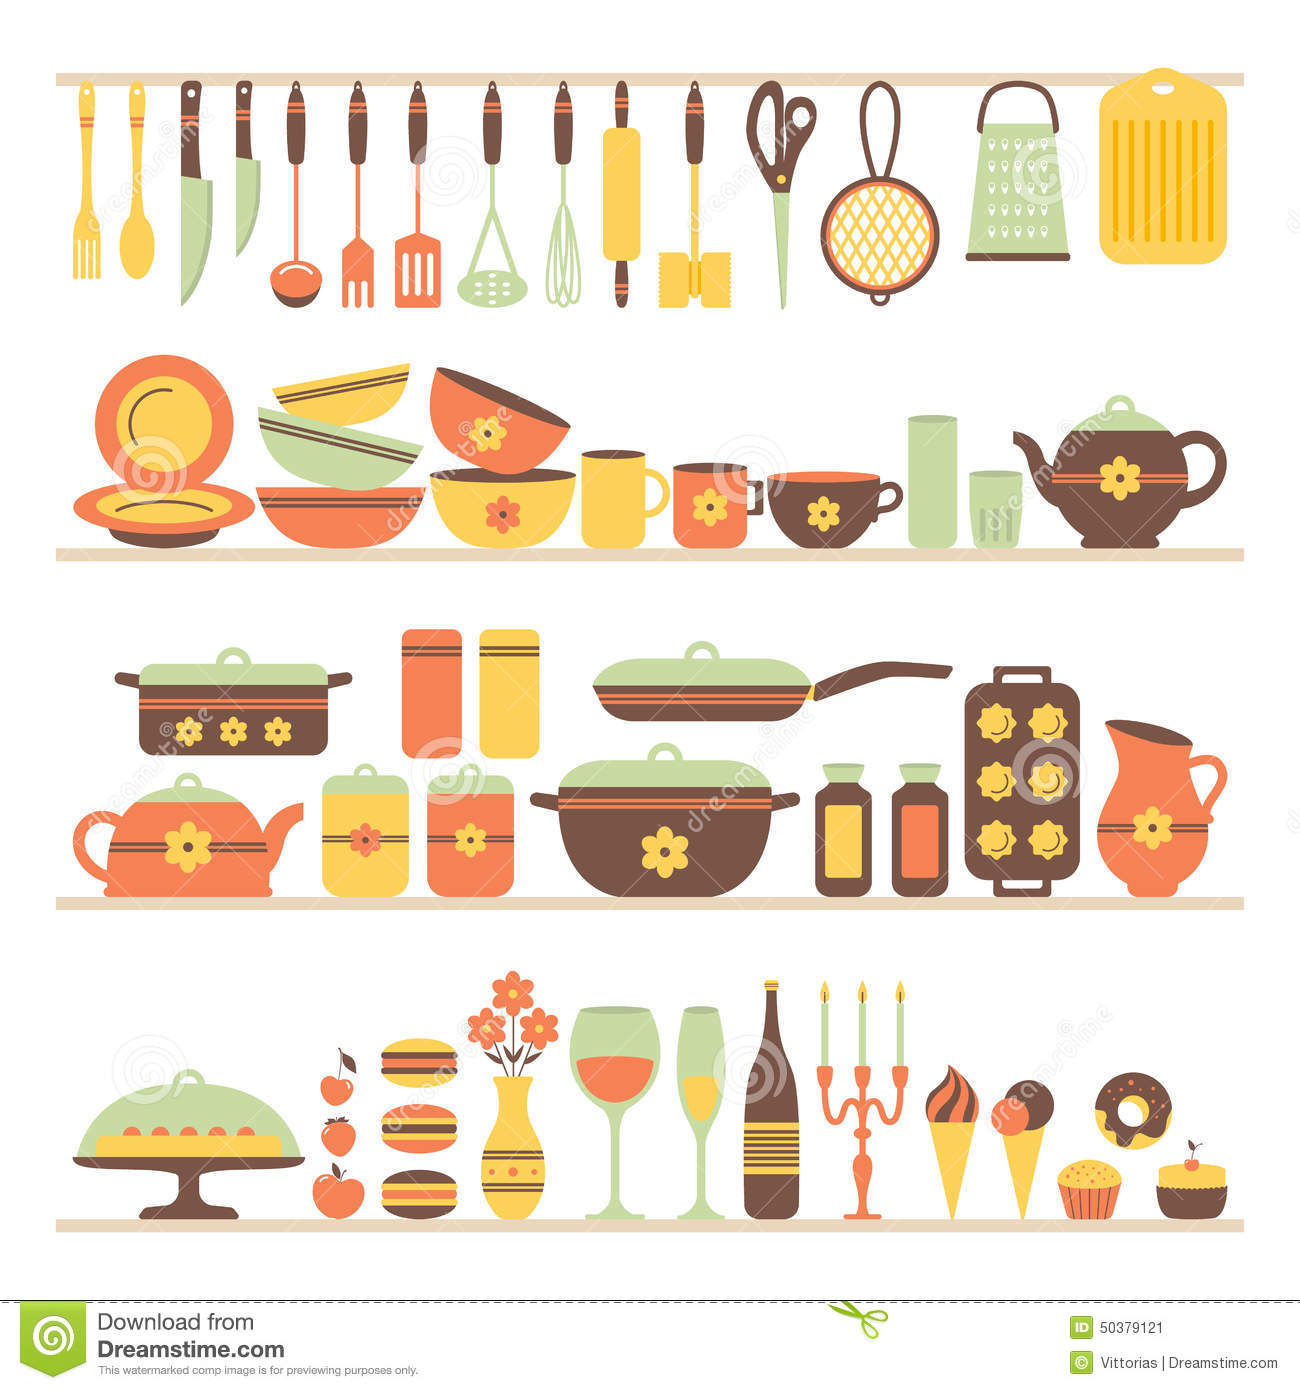 Sketches Of Modern Kitchen Utensils : Set of kitchen utensils and food, objects on shelves. Cookware, home ...